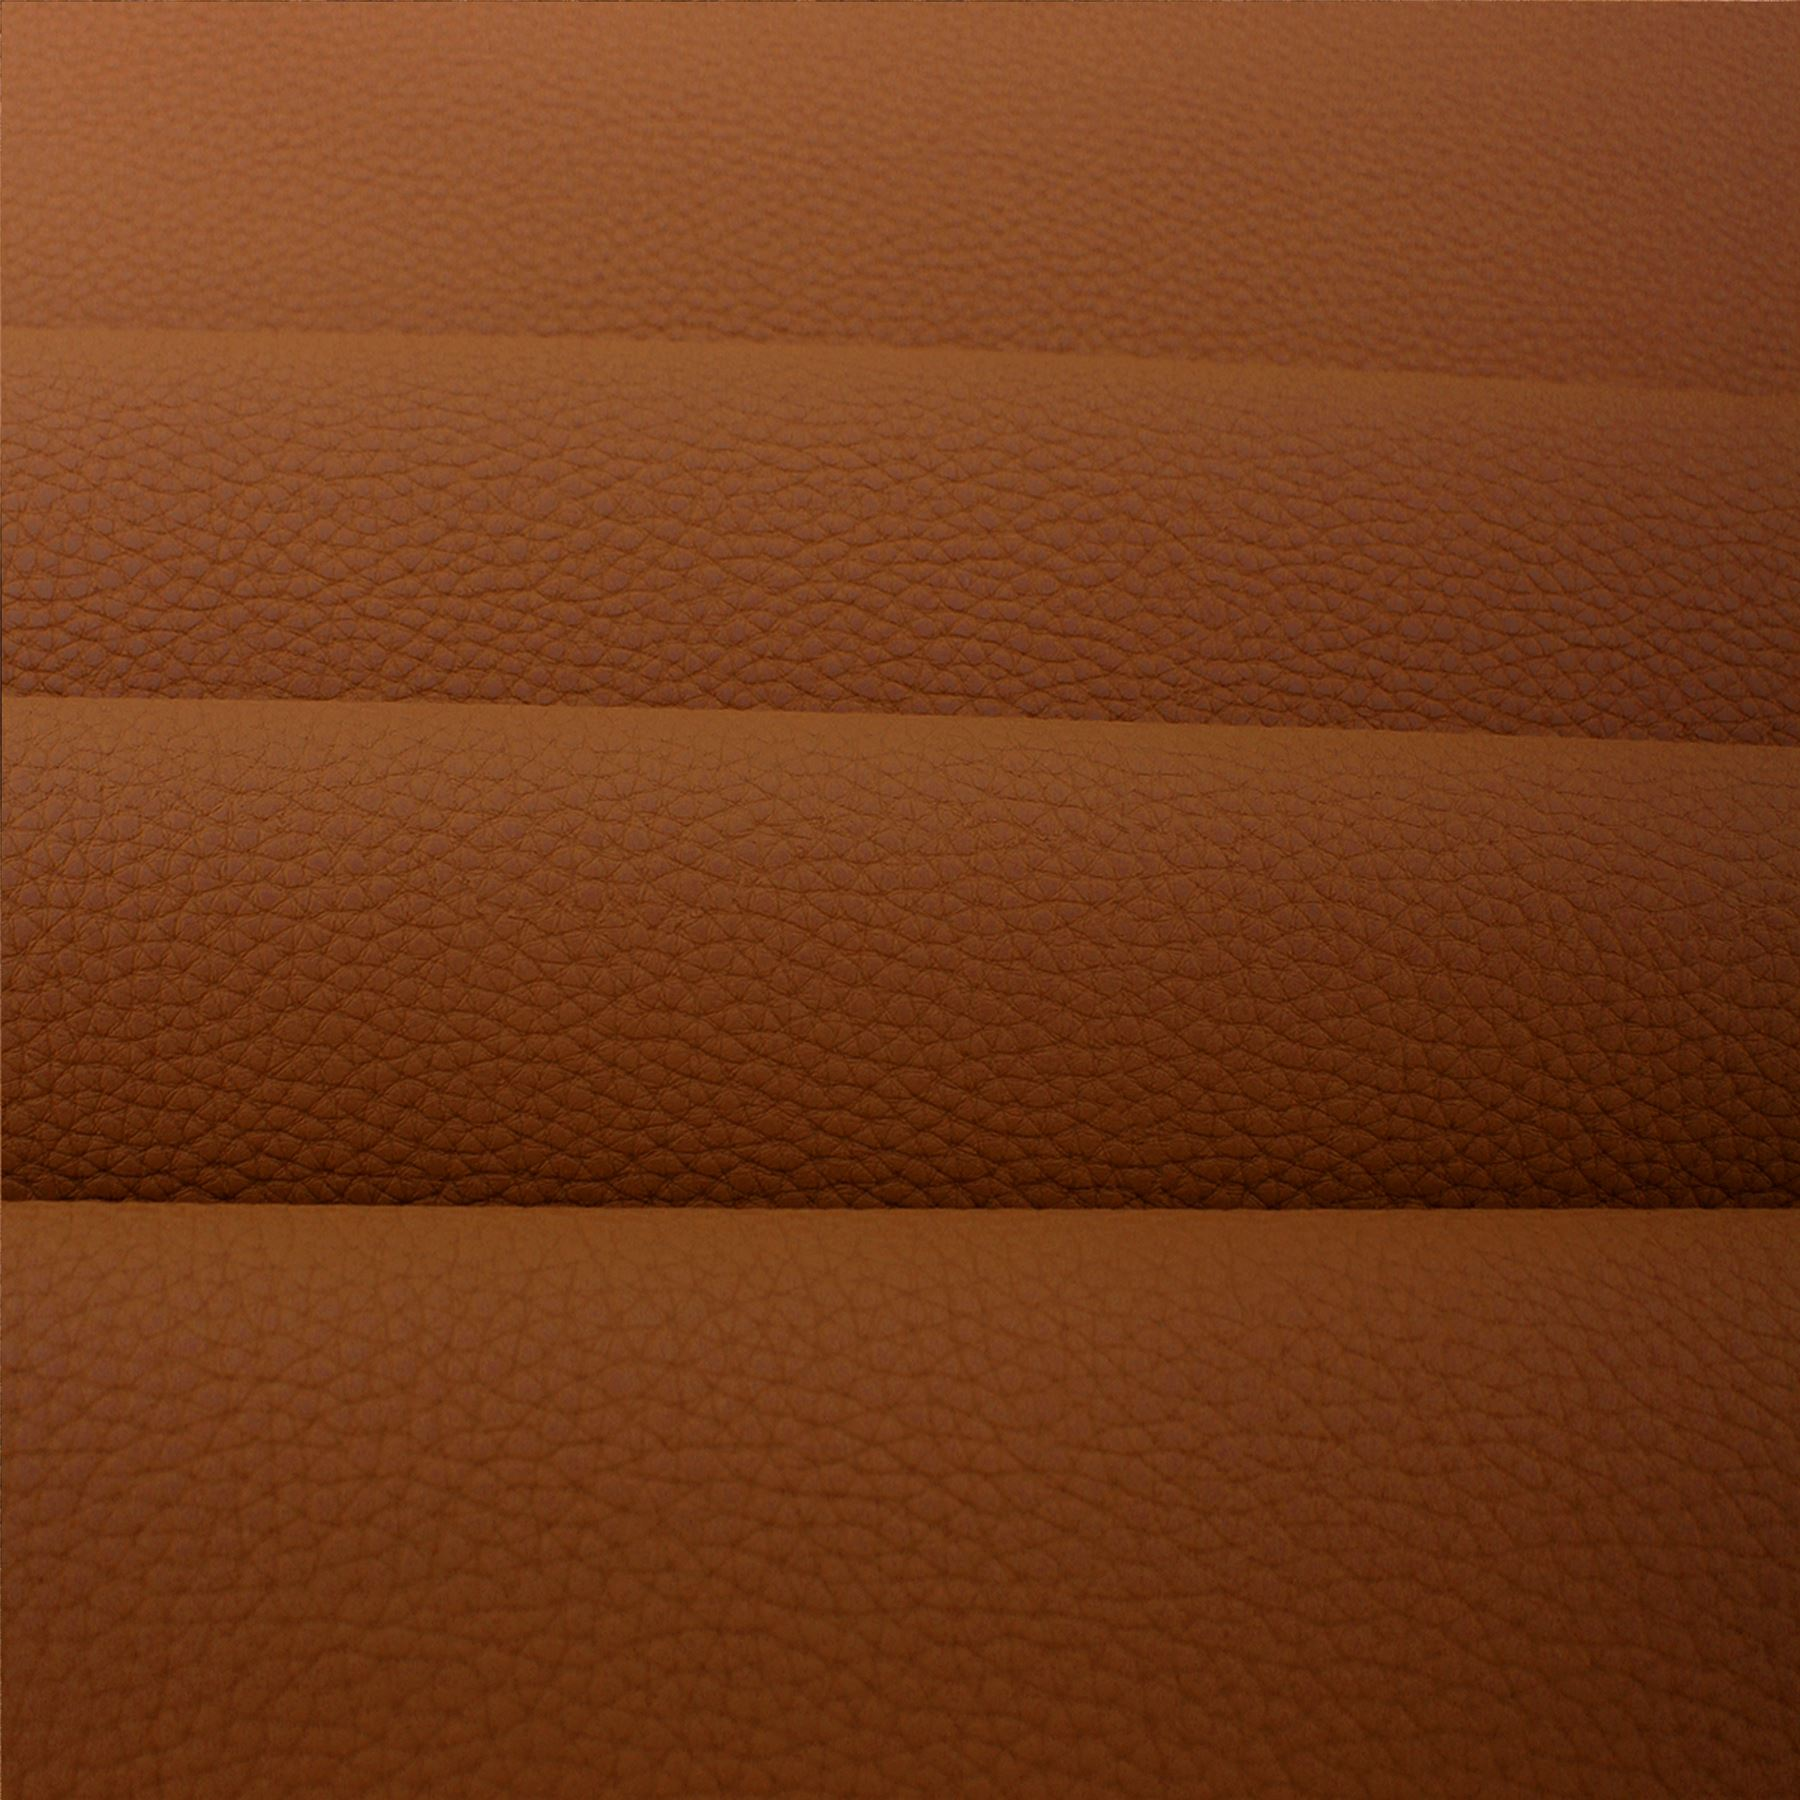 Nova-Faux-Leatherette-Artificial-Leather-Heavy-Grain-Upholstery-Vehicle-Fabric thumbnail 8